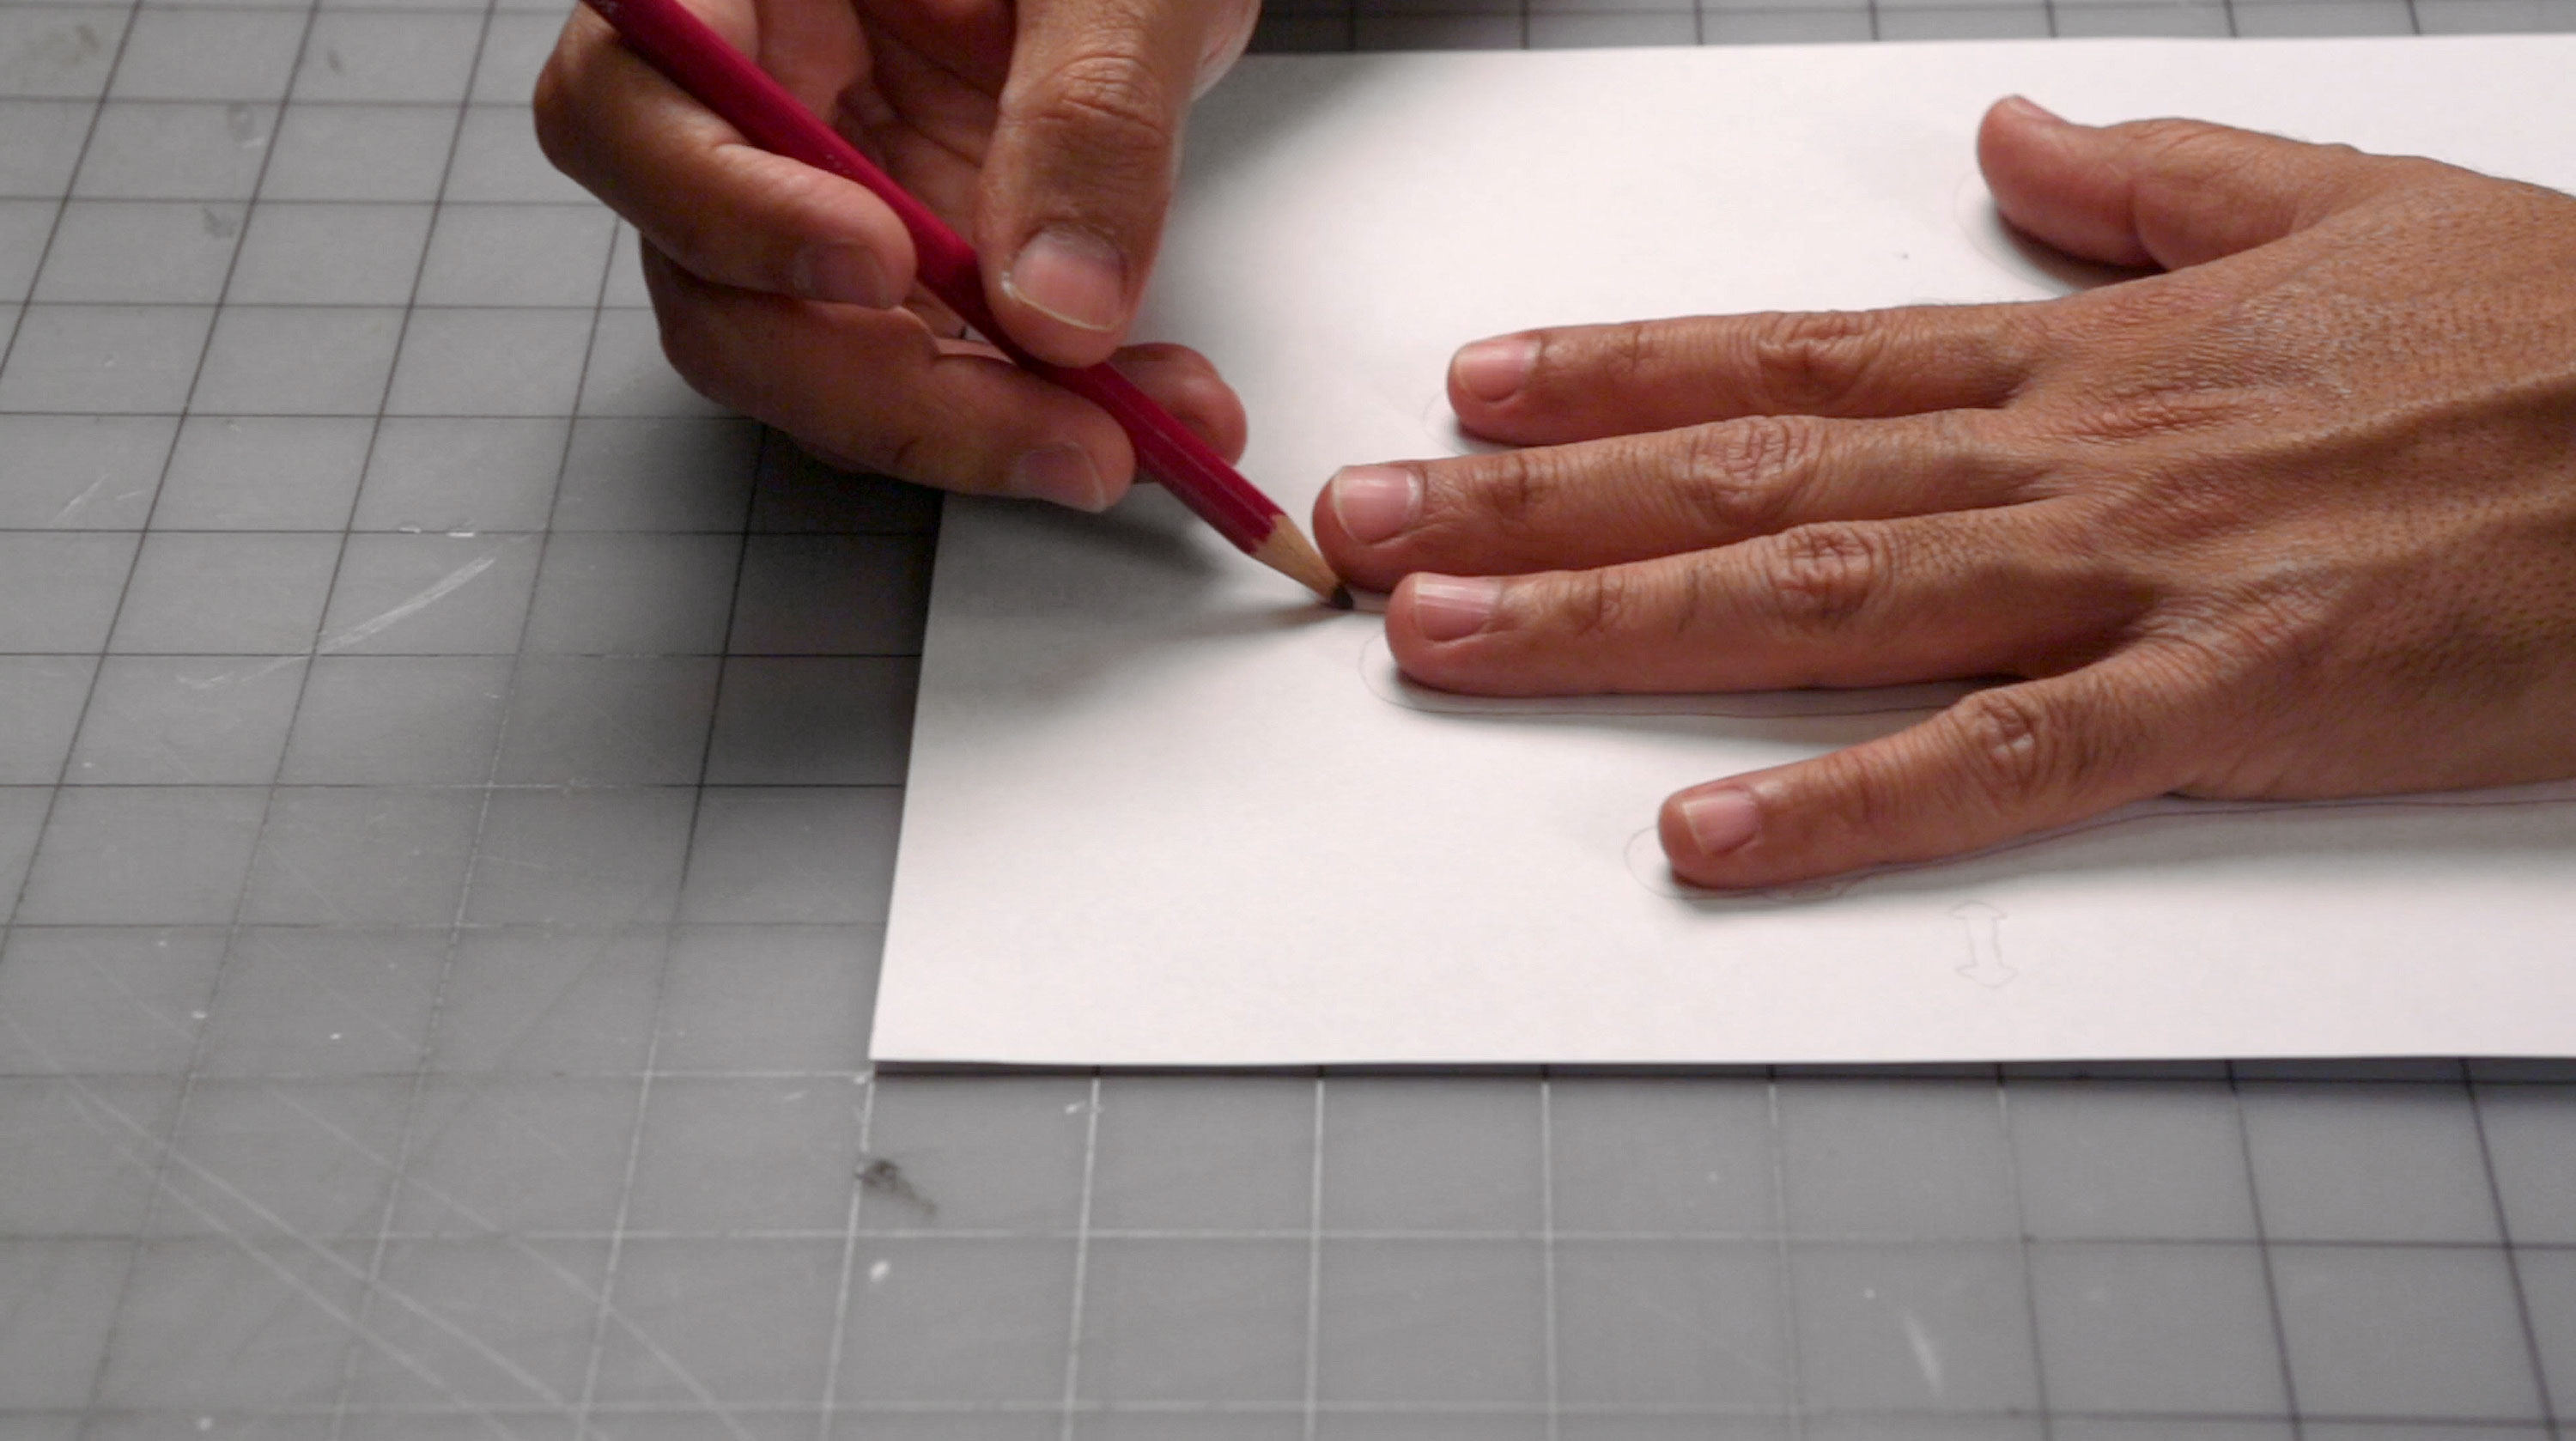 components_draw-hand.jpg